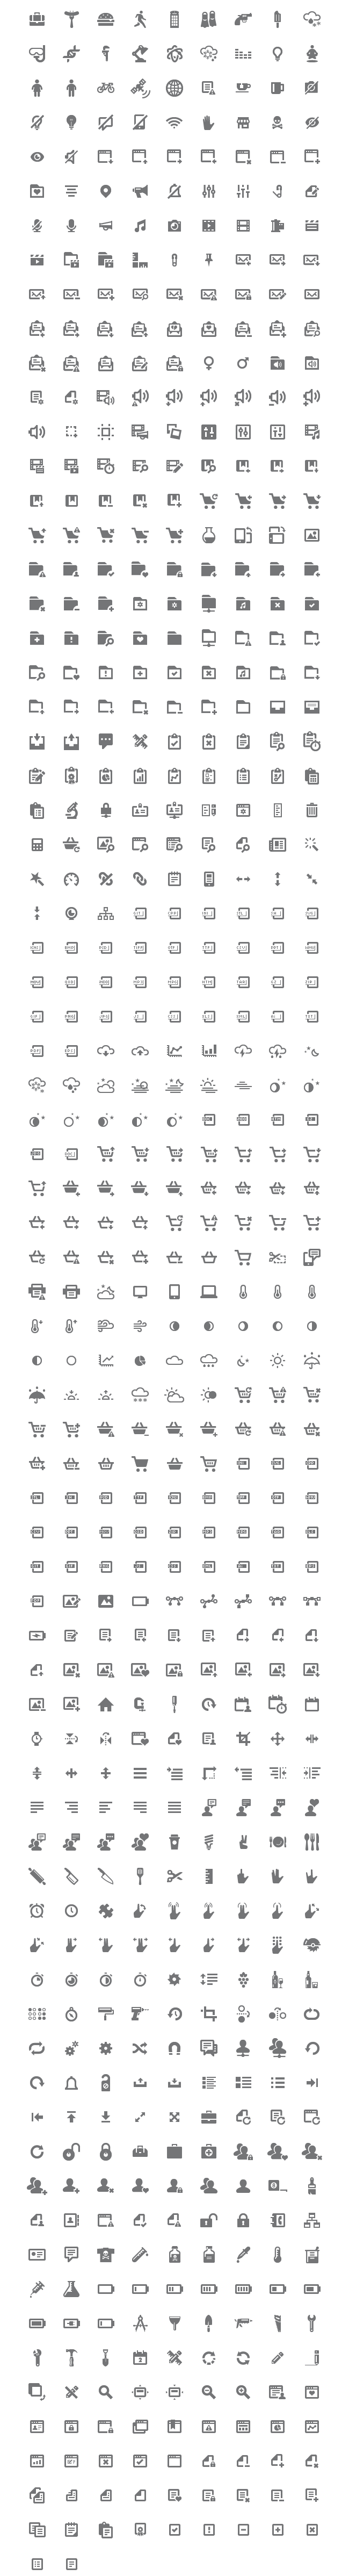 Iconify: 650+ Pixel-Perfect Icons